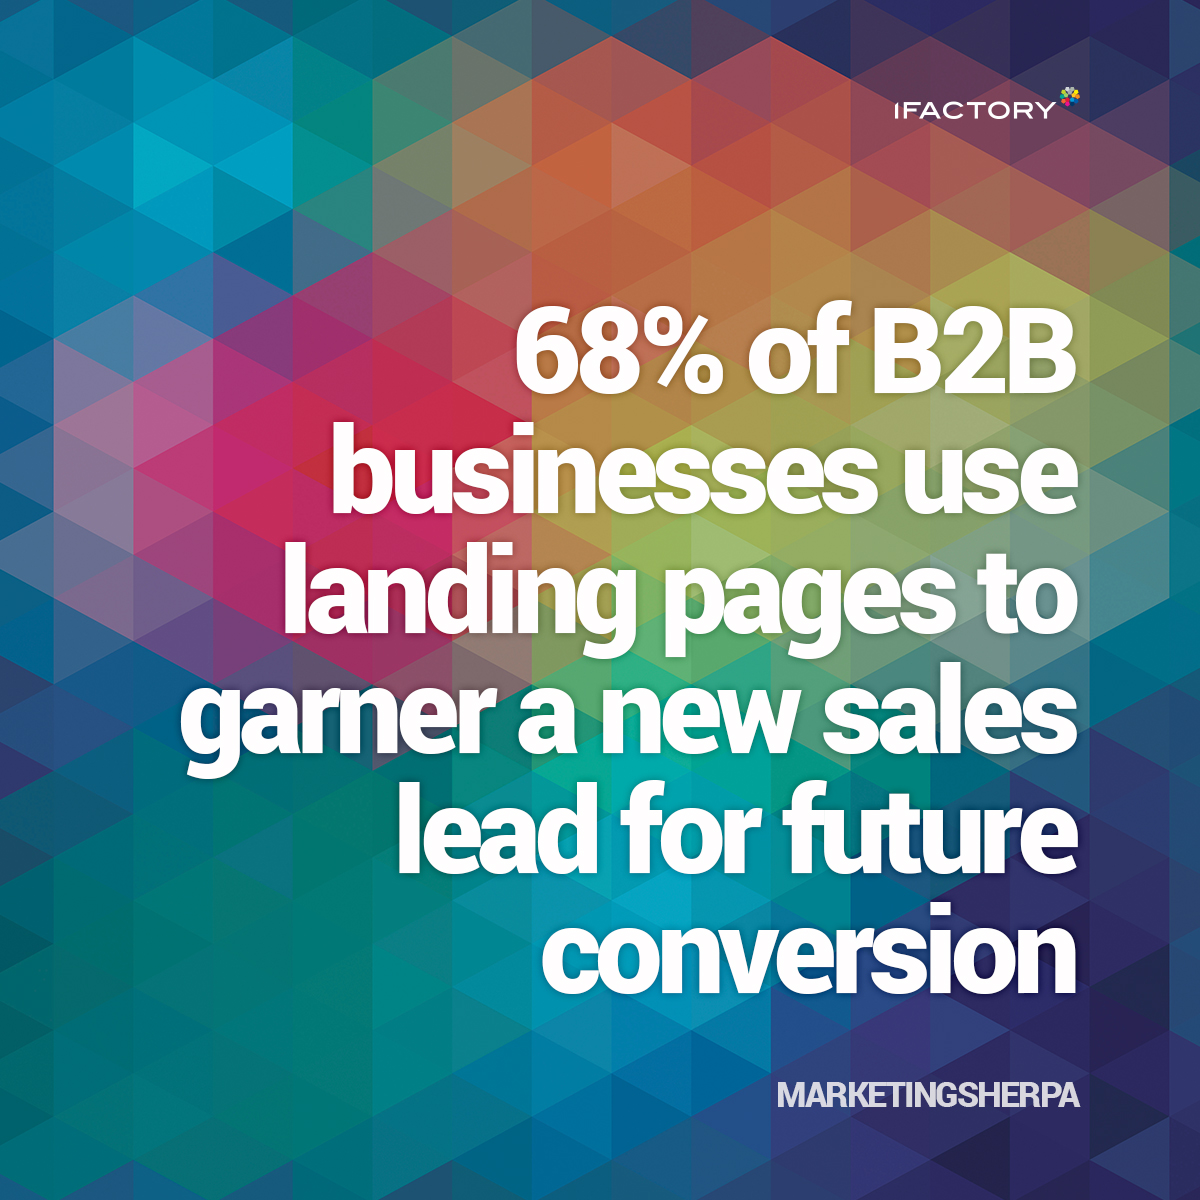 68% of B2B businesses use landing pages to garner a new sales lead for future conversion